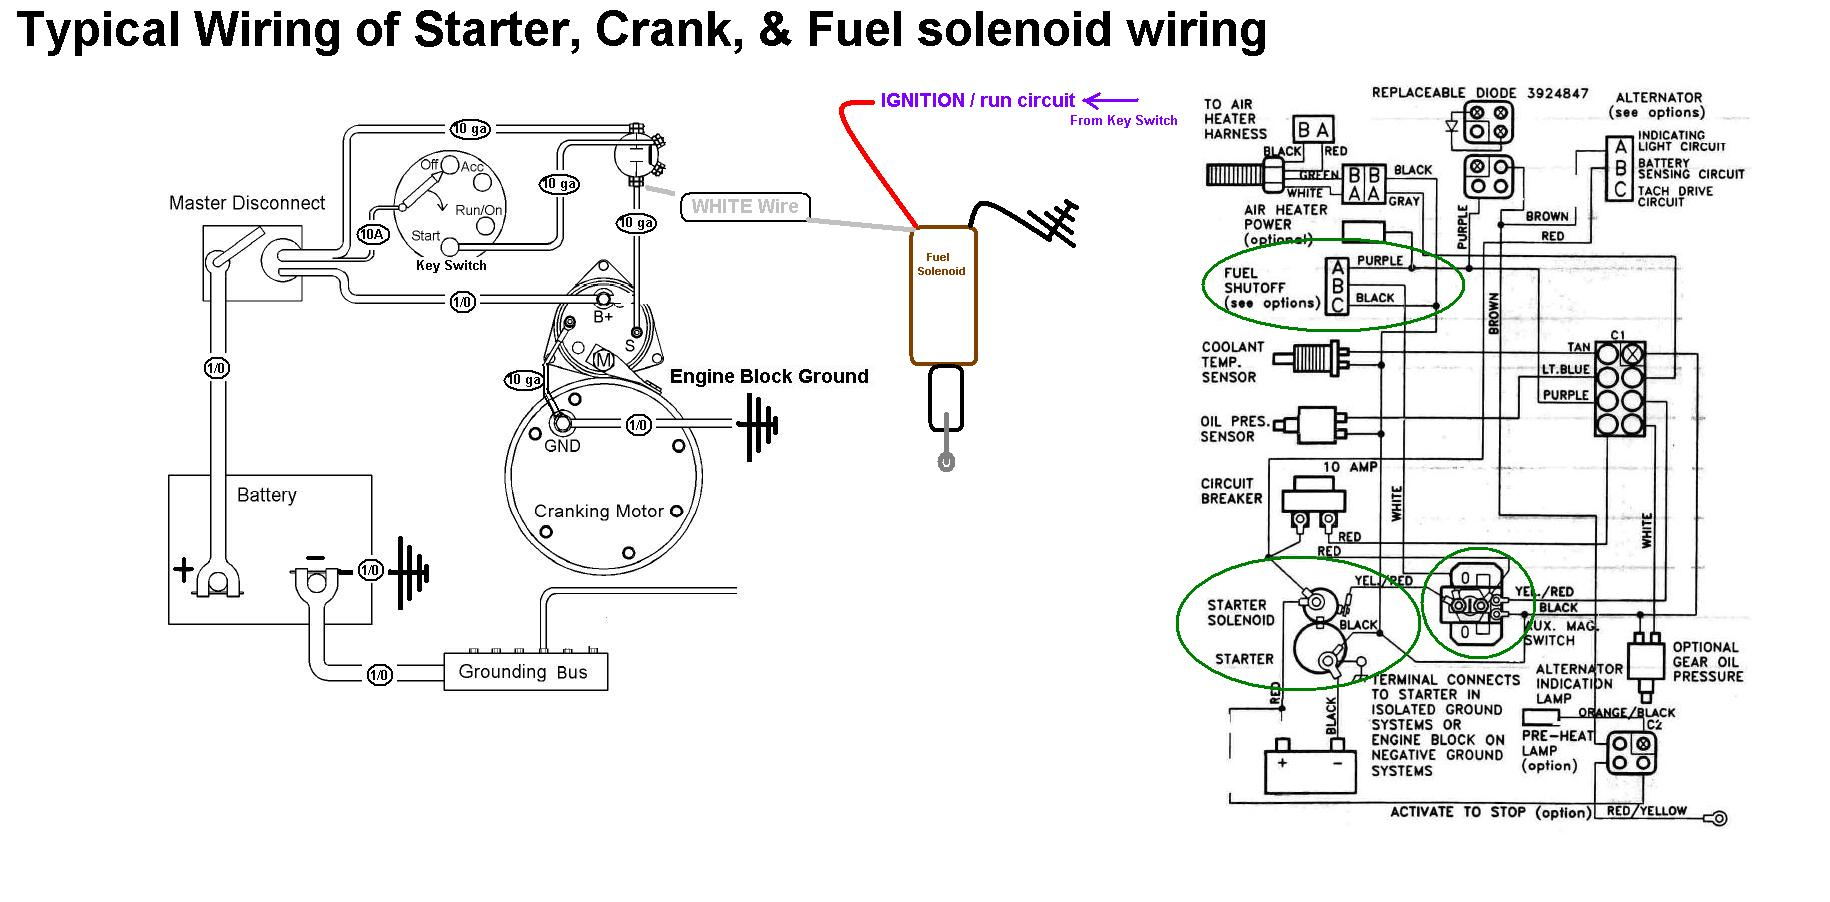 Diesel Starter Solenoid Wiring Diagram Library With Attached Crank Fuel Shutoff Seaboard Marine Rh Sbmar Com Cummins Isx